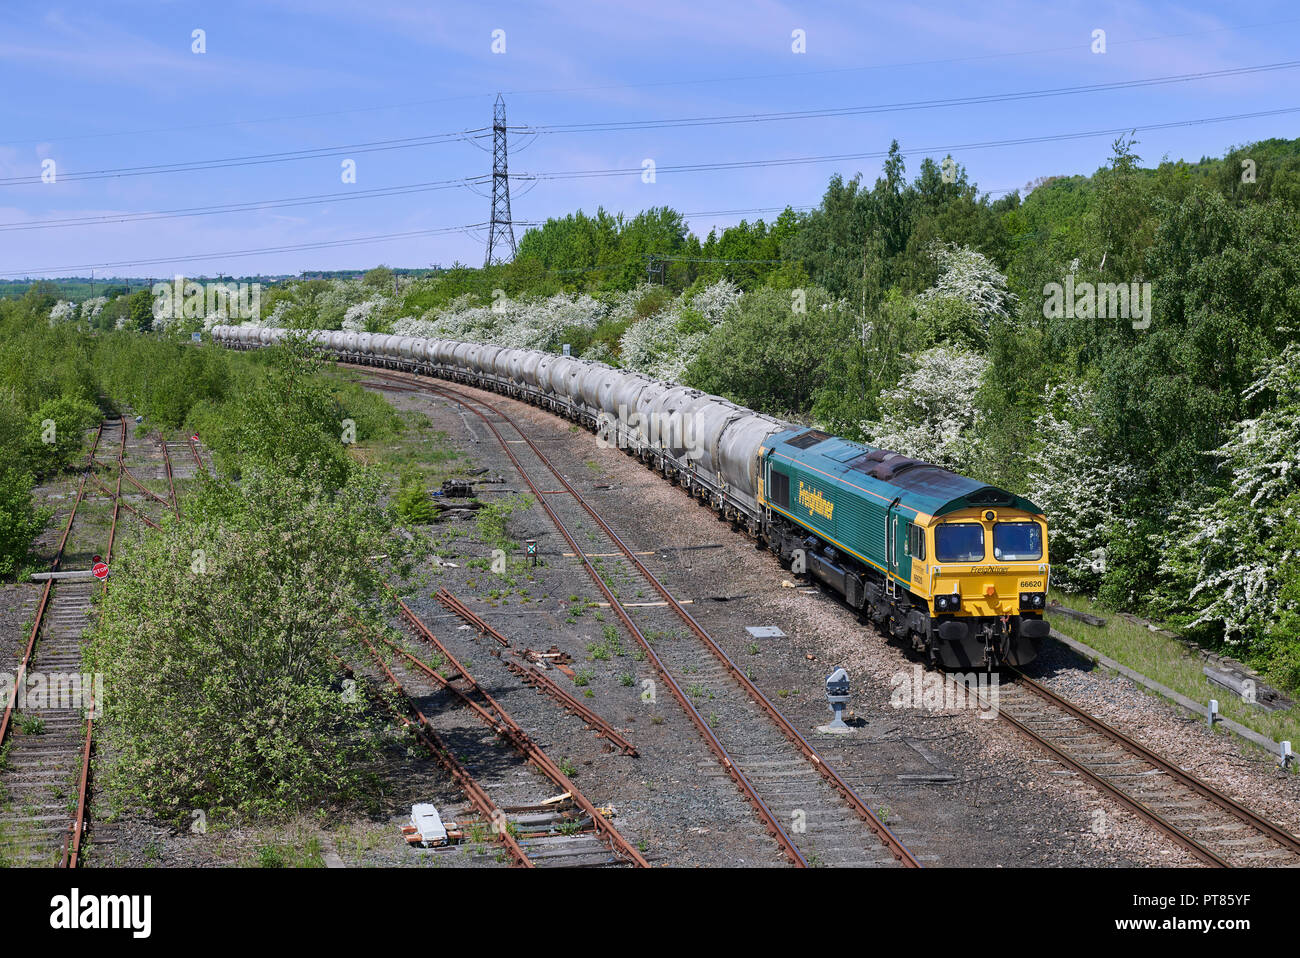 Freightliner 66620 13:15 Dewsbury Blue Circle to Hope (Earles Sidings) cement - Healey Mills. May 15th 2018. - Stock Image